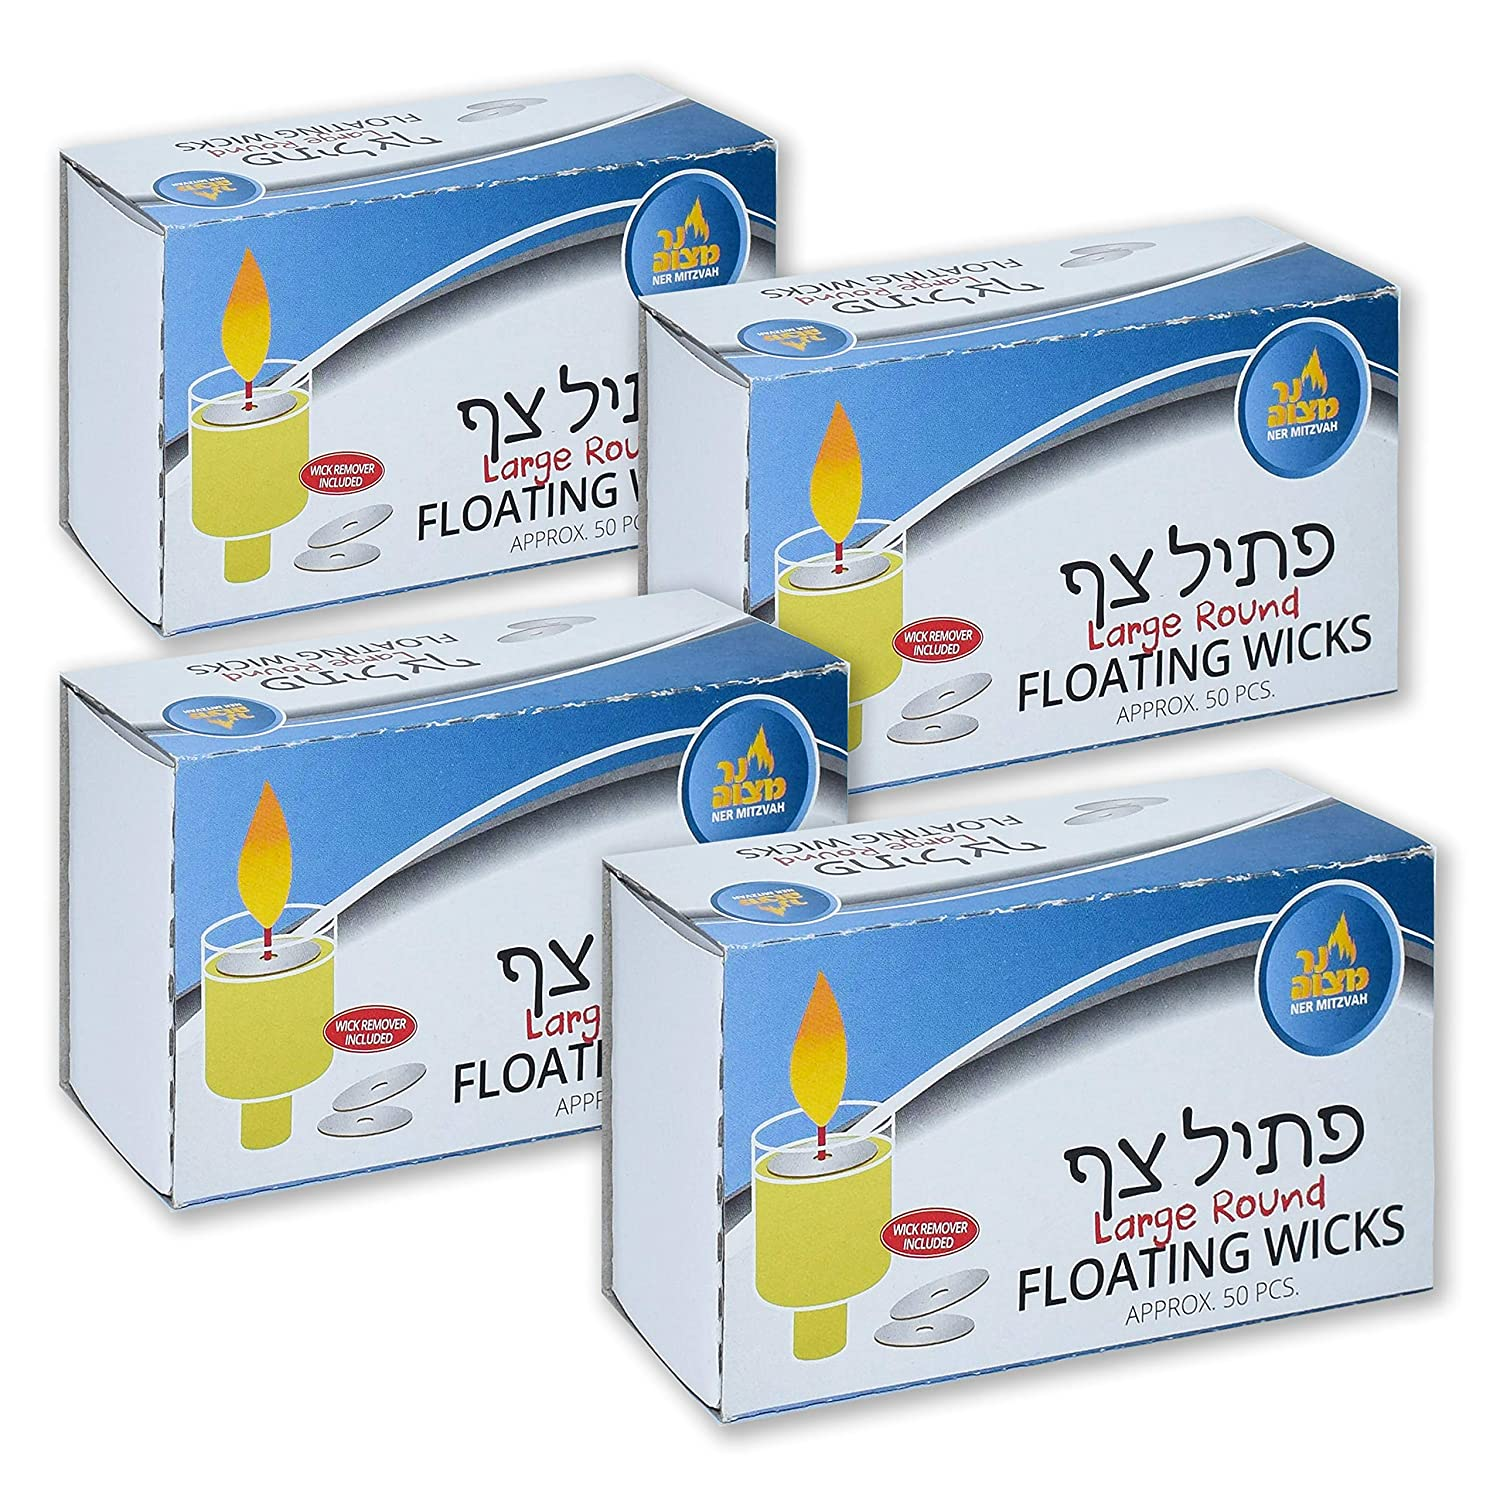 Ner Mitzvah Round Floating Wicks – 200 Count (Approx.), Large Cotton Wicks and Cork Disc Holders for Oil Cups - Bonus Wick Removal Tweezers